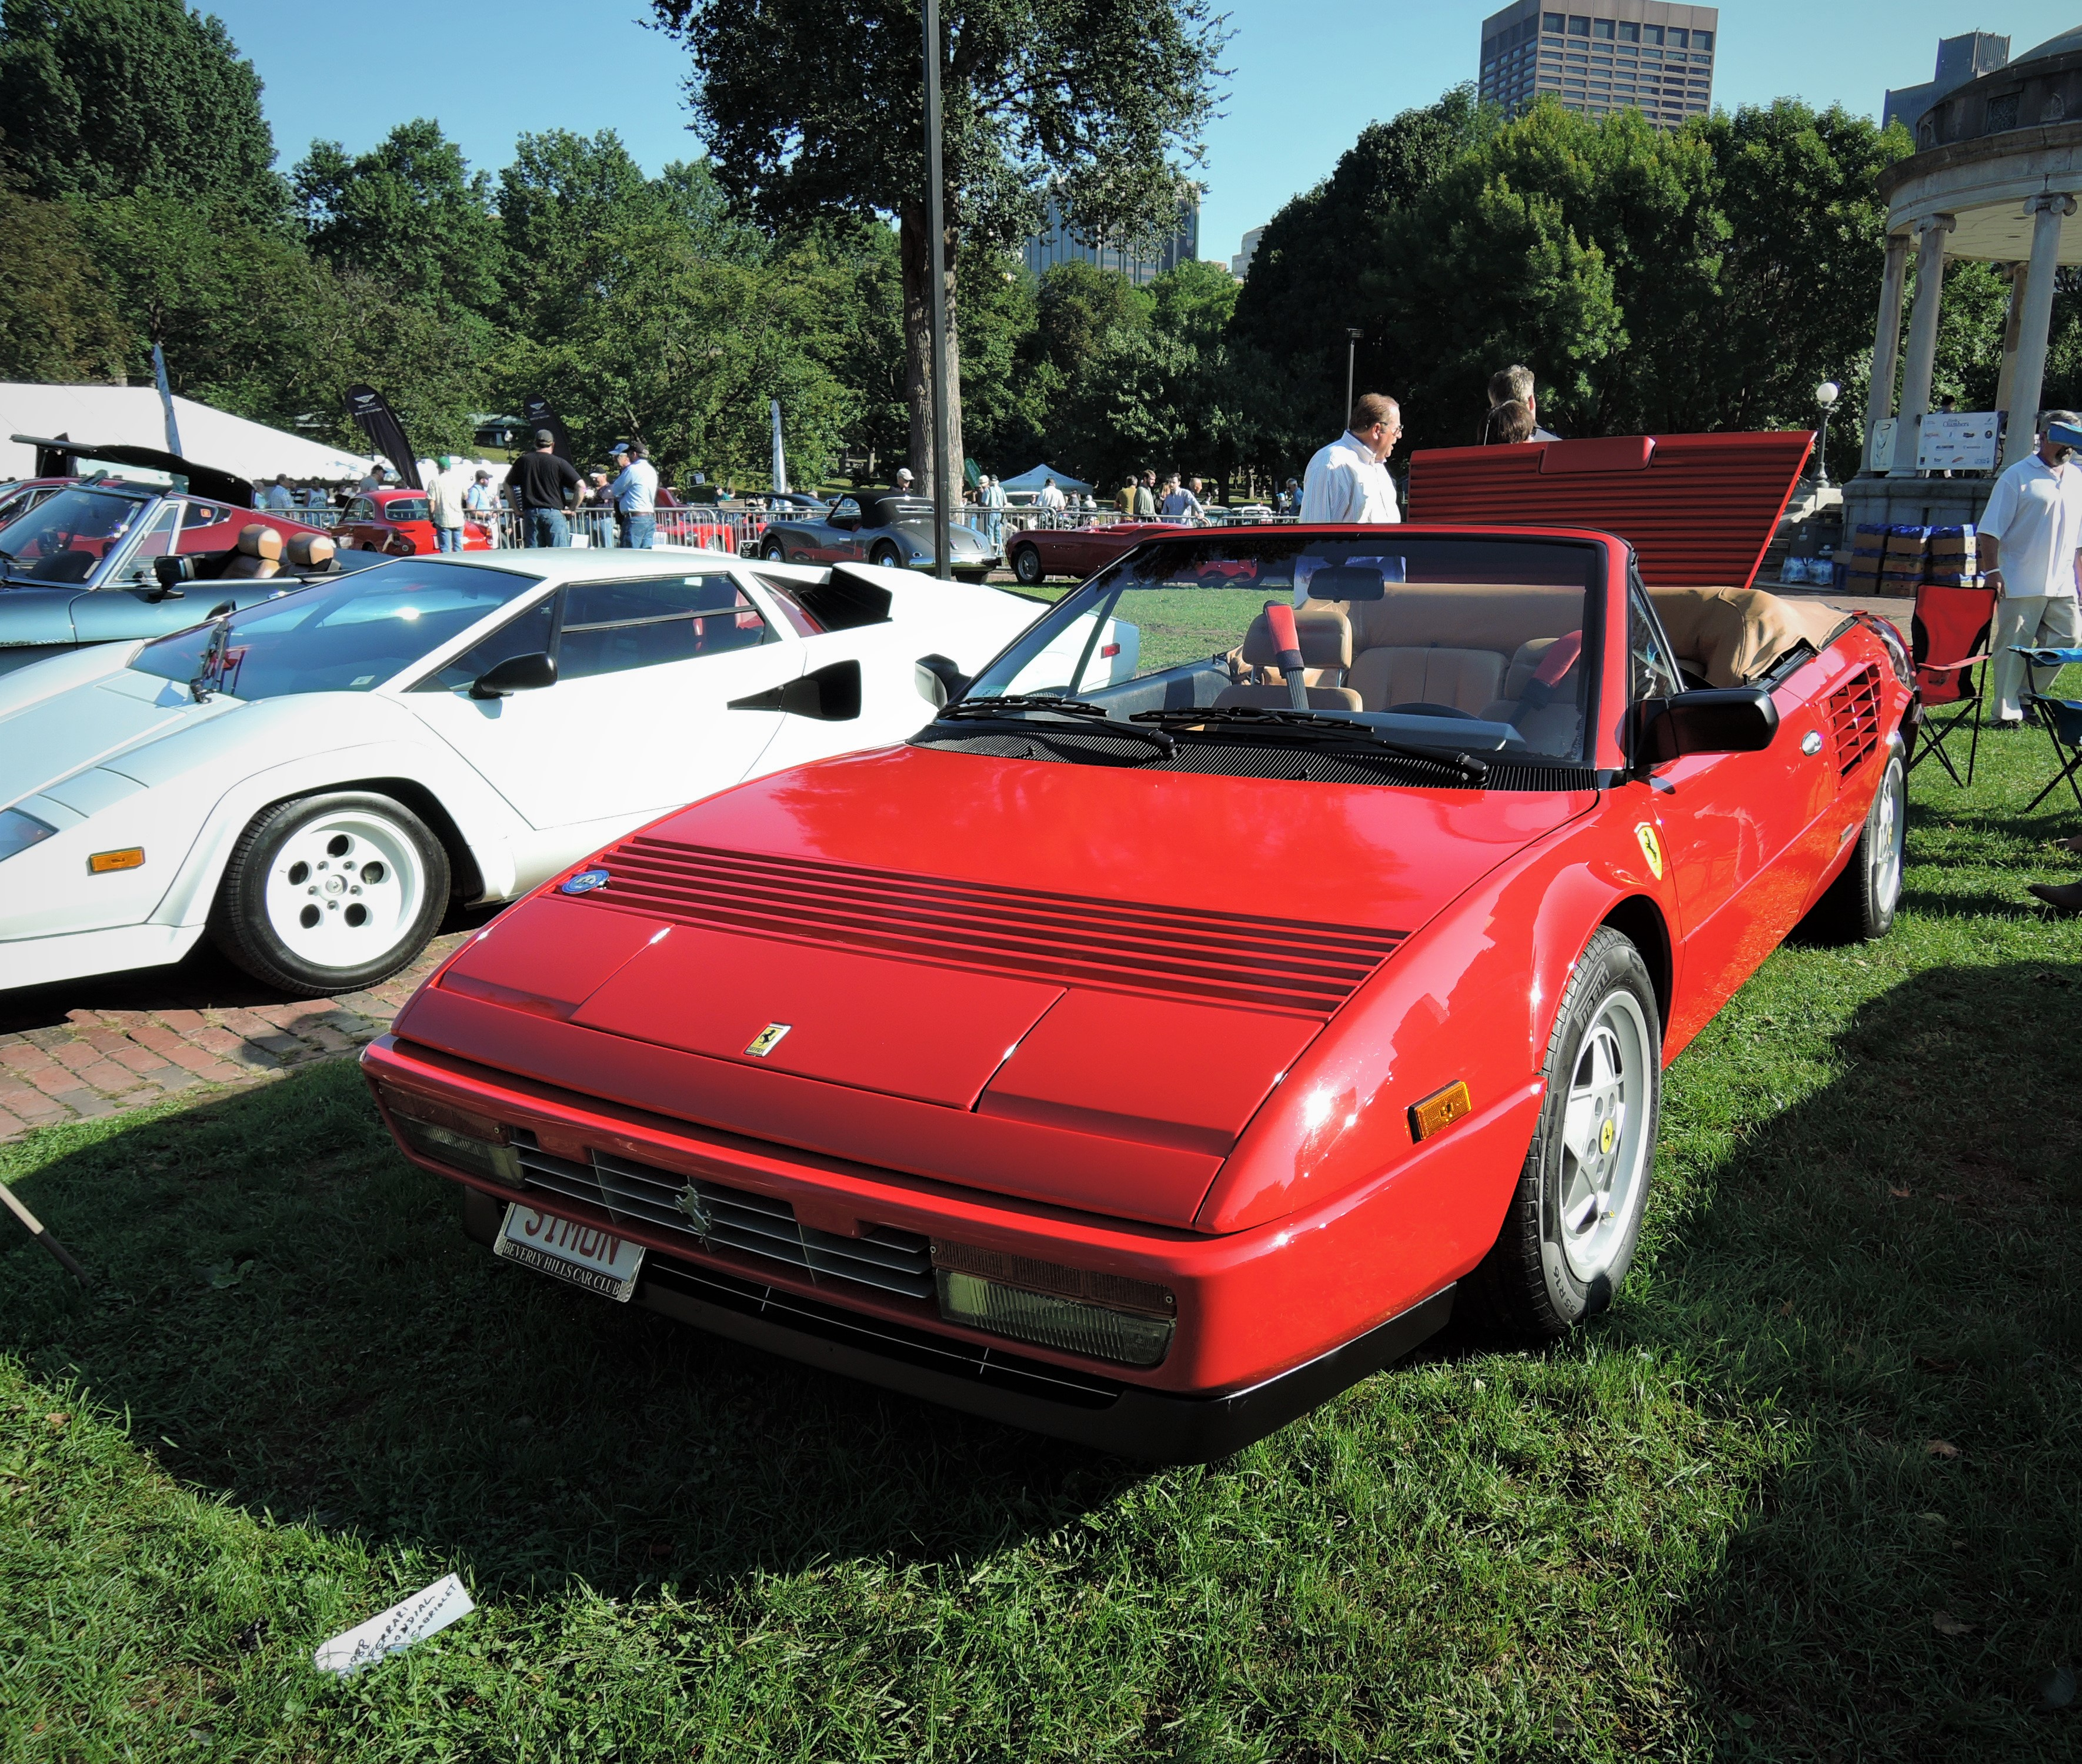 red 1988 Ferrari Mondial Convertible - The Boston Cup 2017